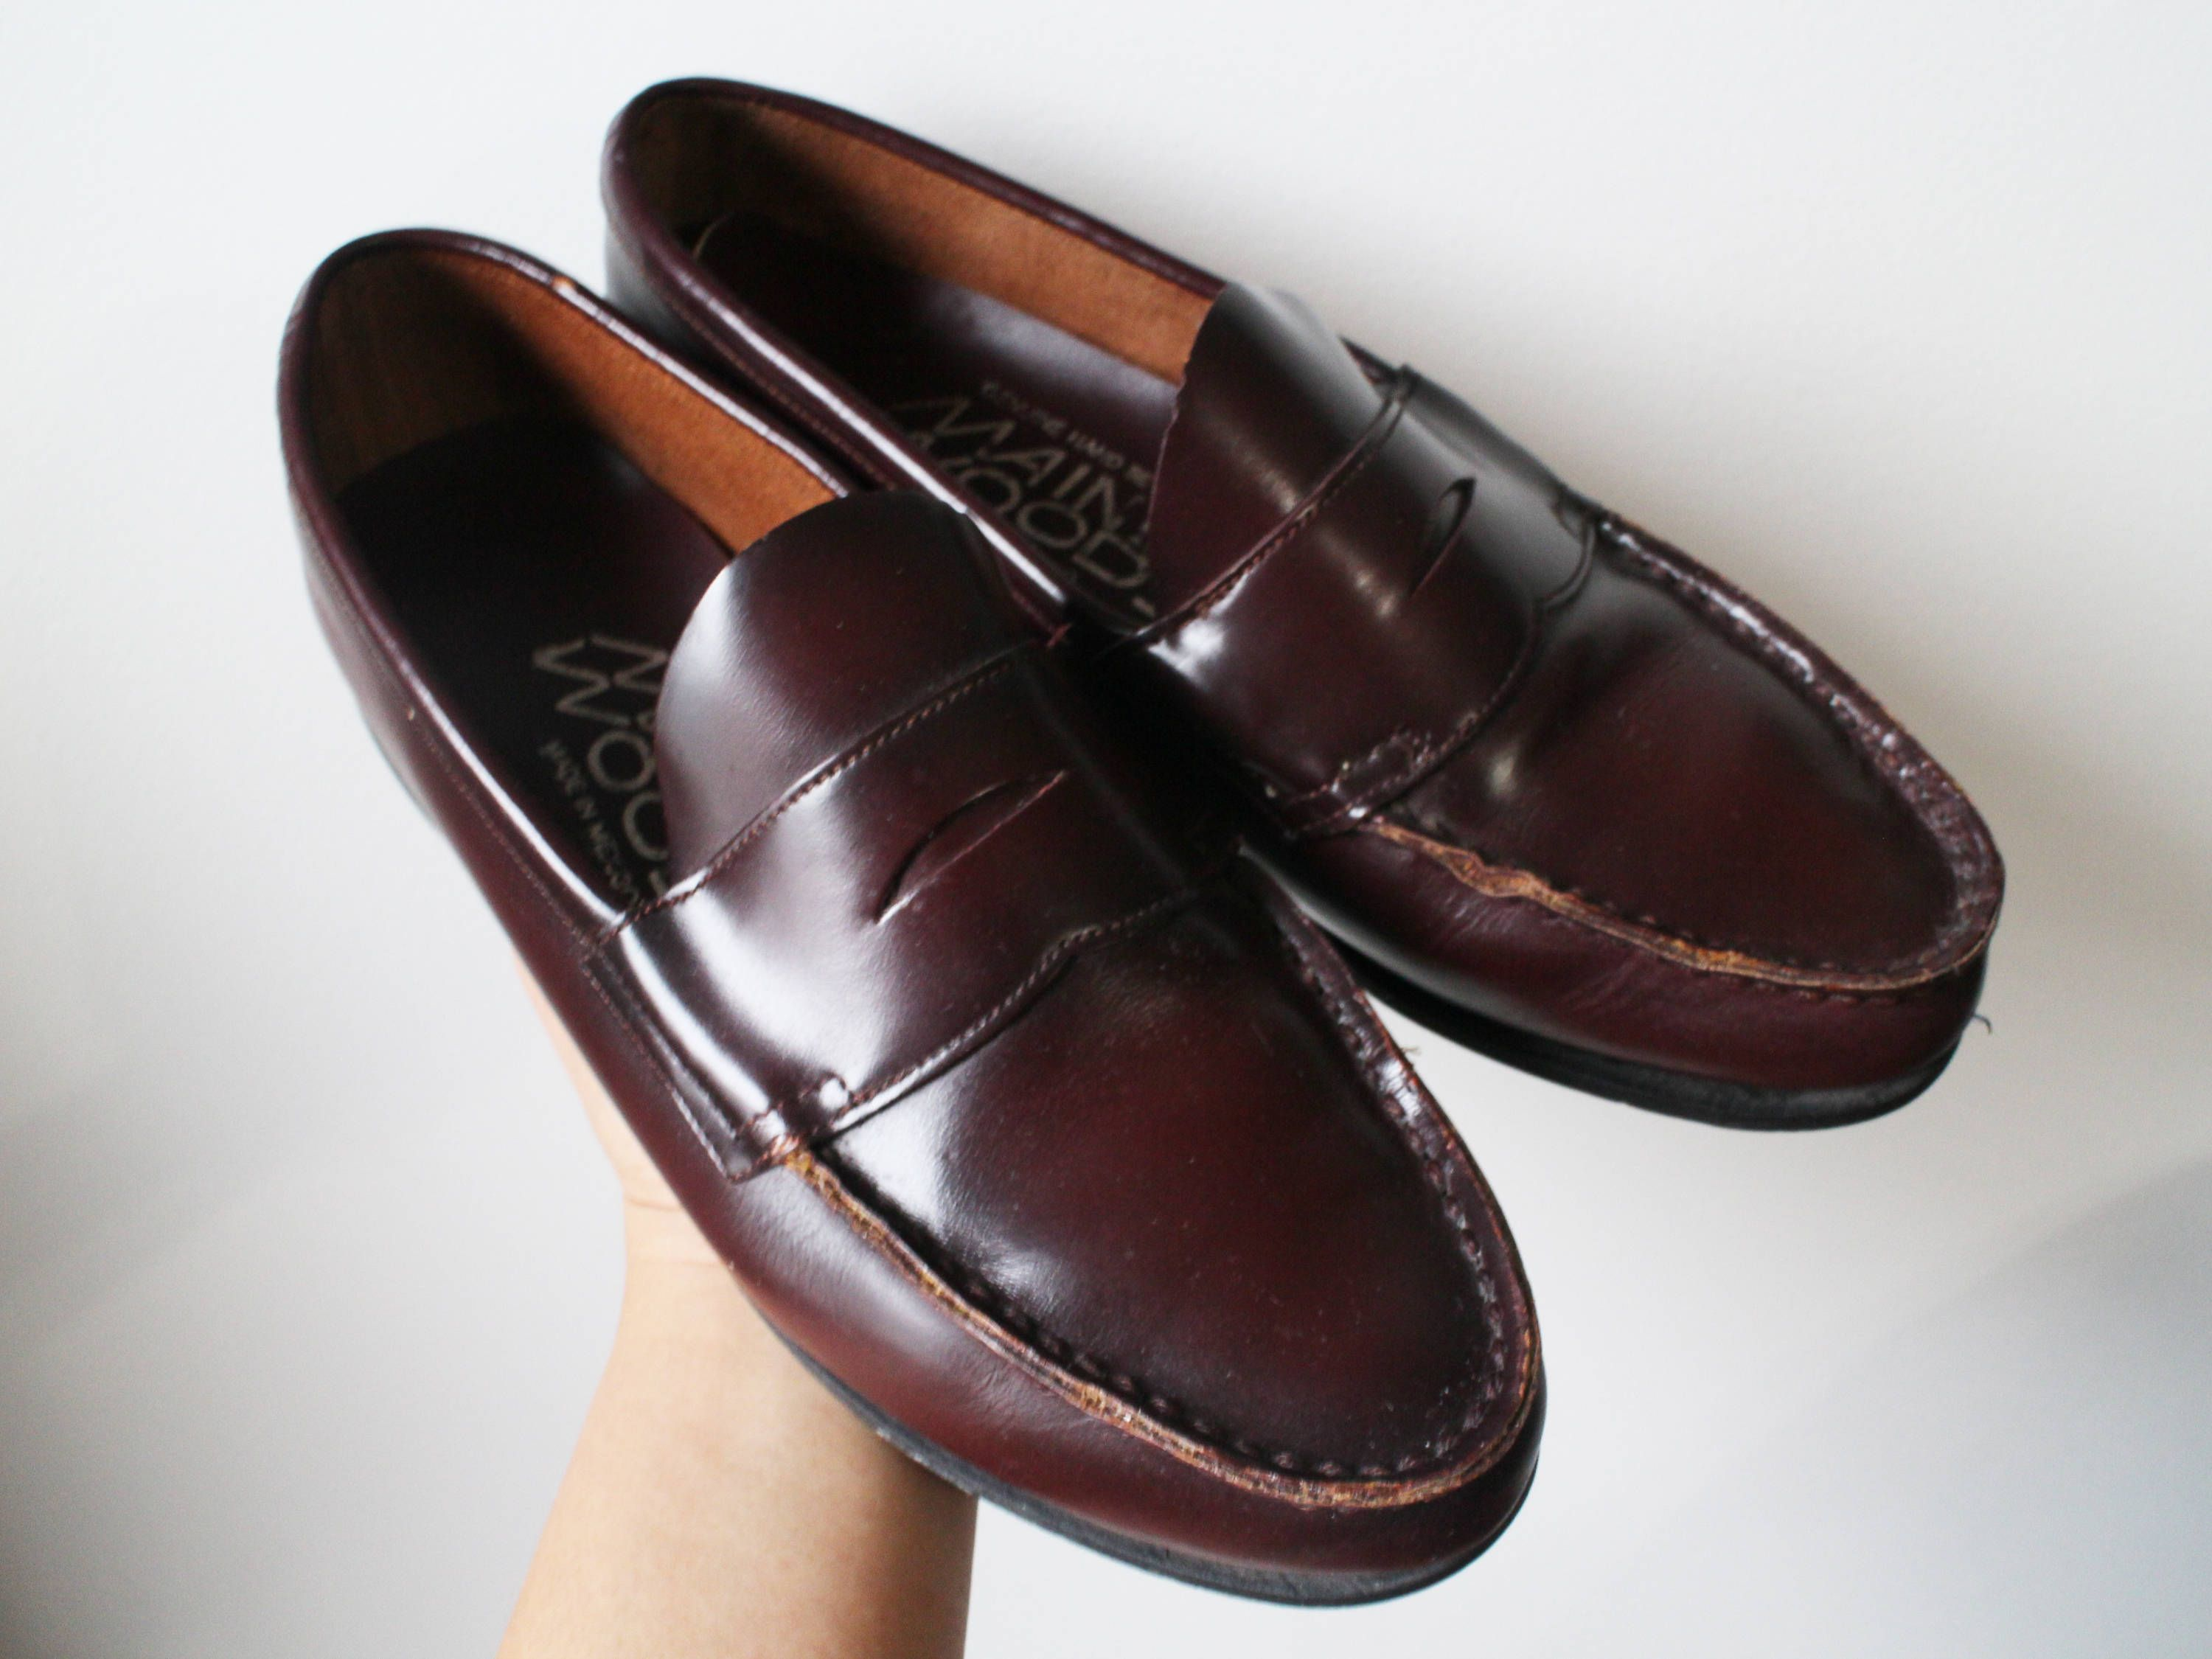 57553ddf5f3 Size 9.5 Vintage Womens MAINE WOODS Classic Genuine Leather Penny Loafers  Hand Sewn